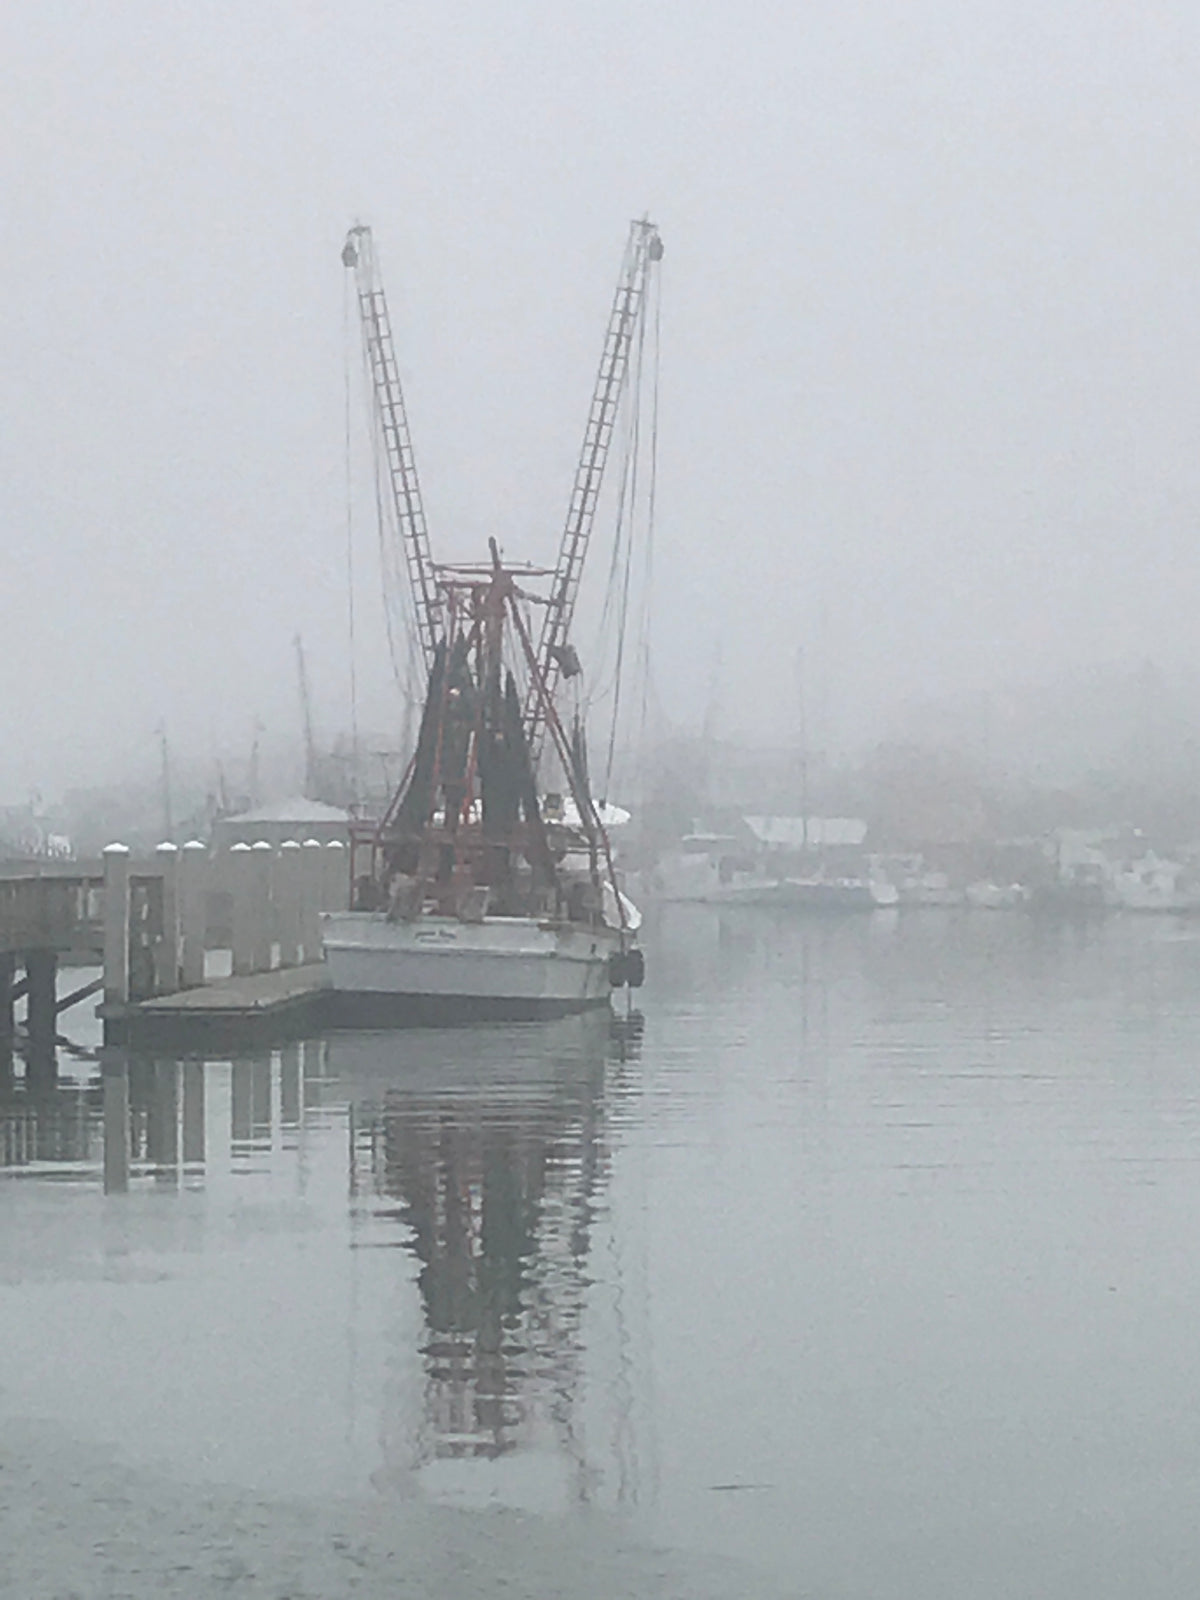 Shrimp Boat in the Mist by Steven Jordan